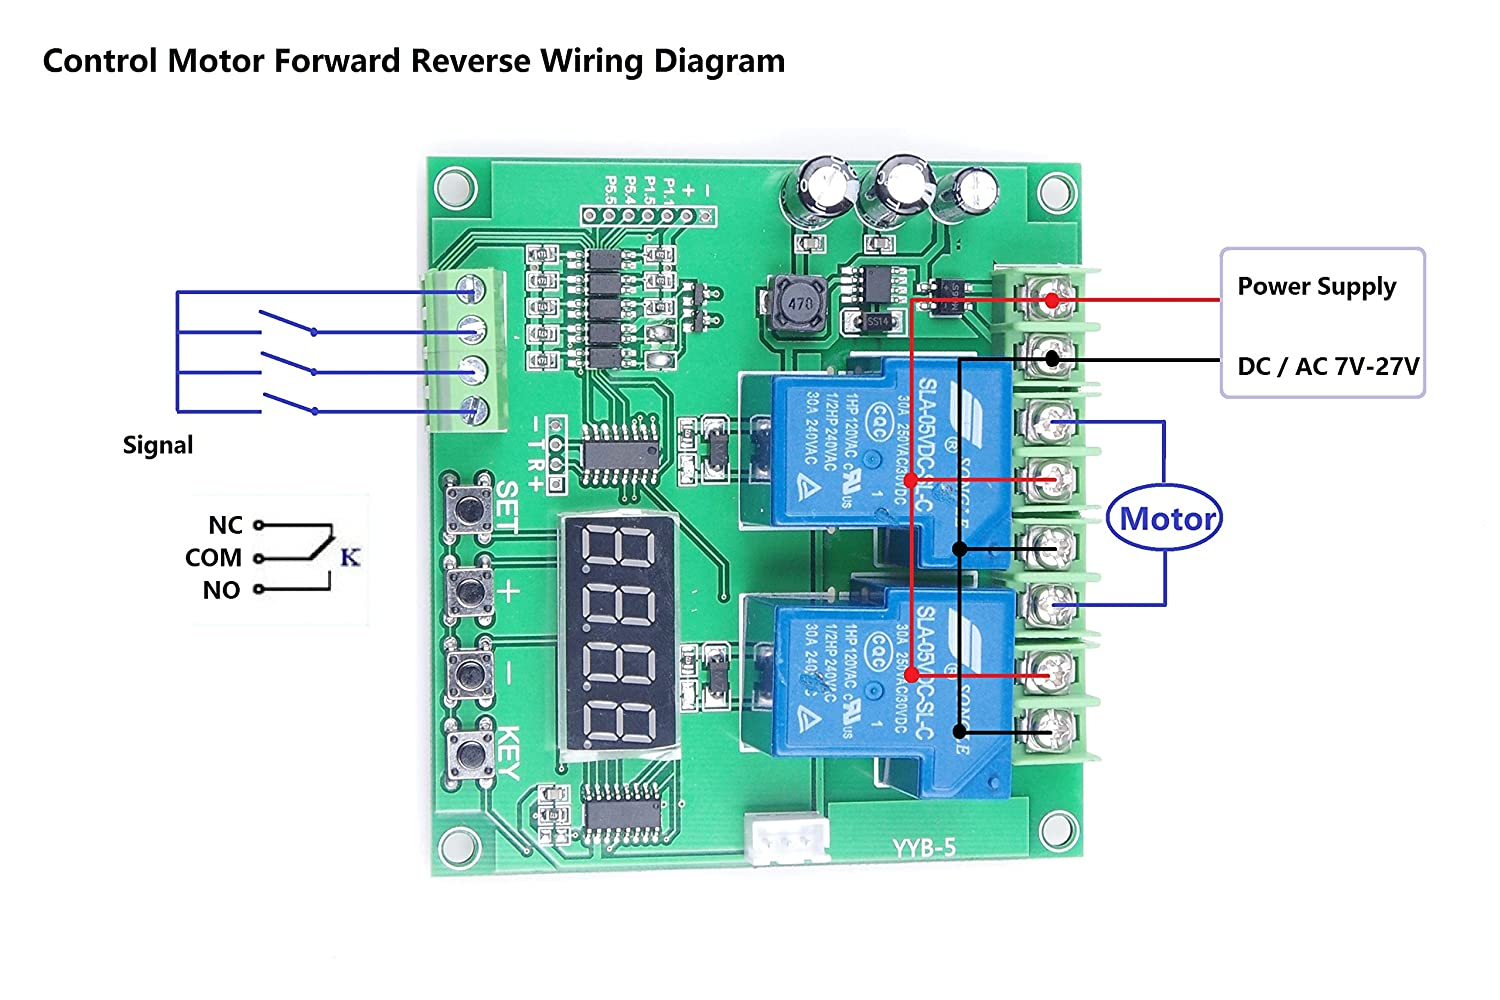 Wiring Diagram Forward Reverse Motor